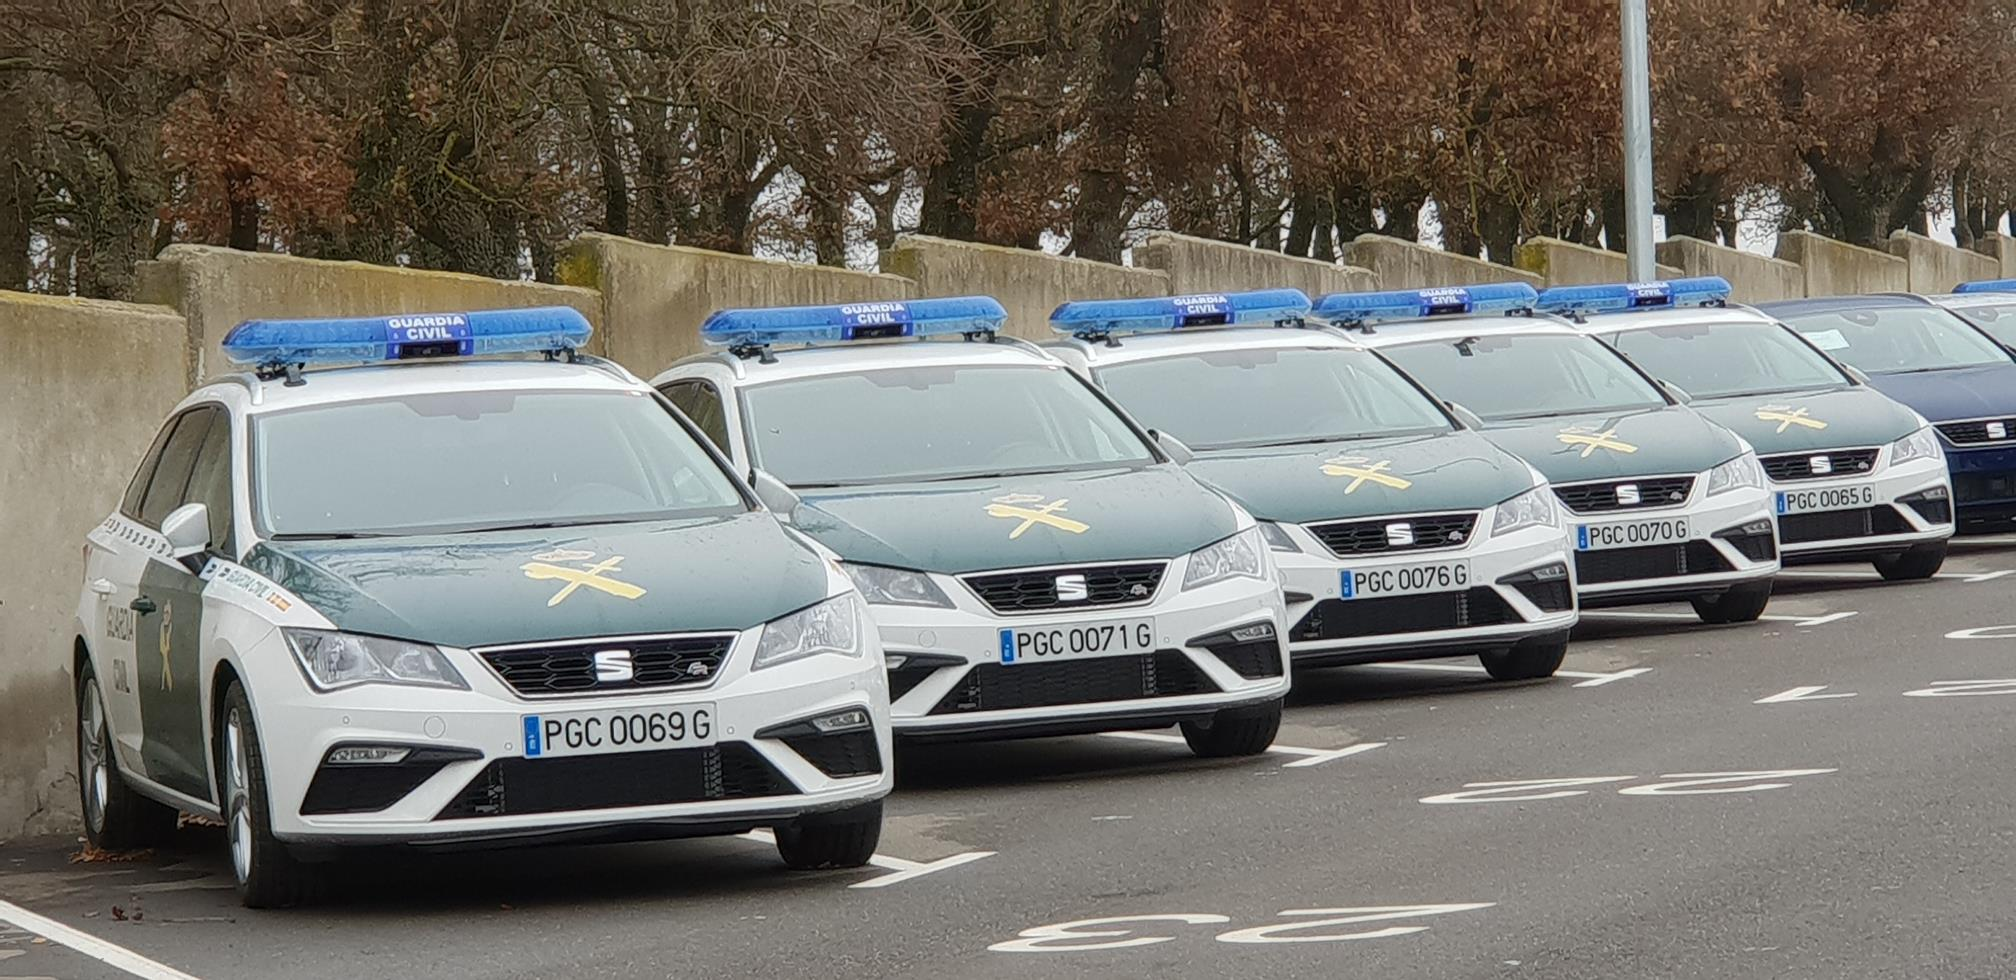 Seat León Guardia Civil